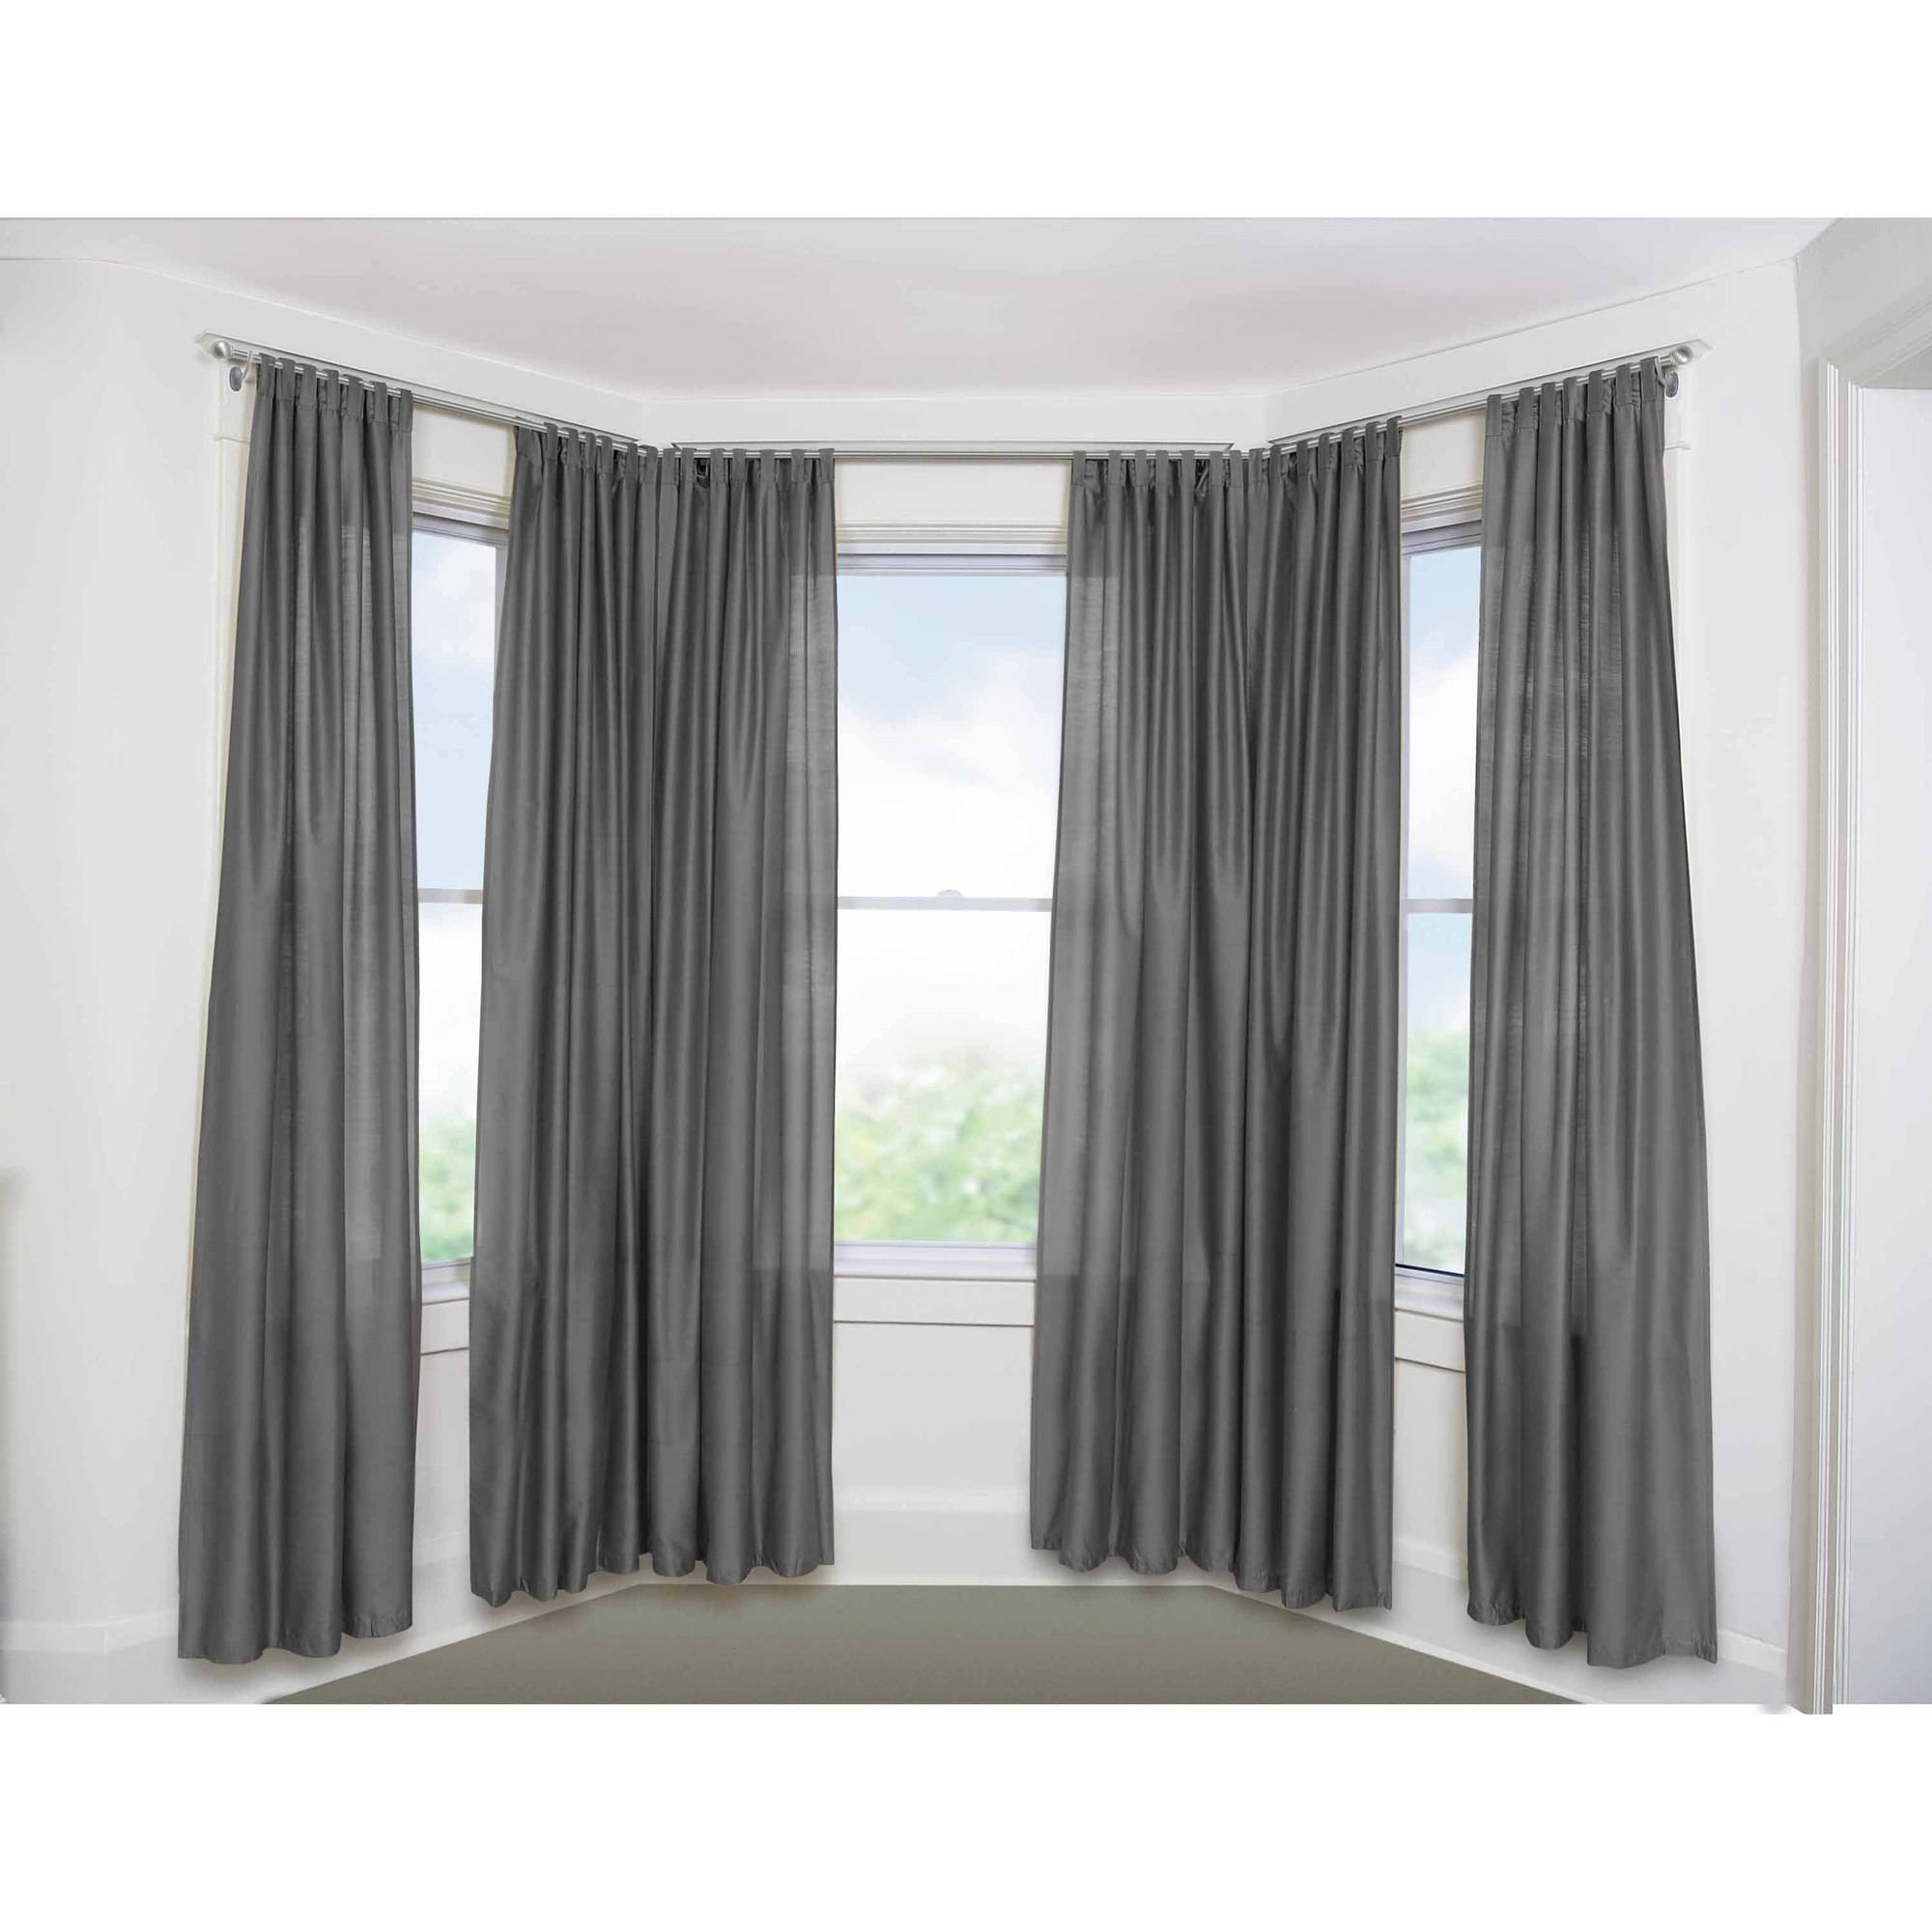 bow window curtain rods rooms curtain amazing bow window curtain rods curved rods for